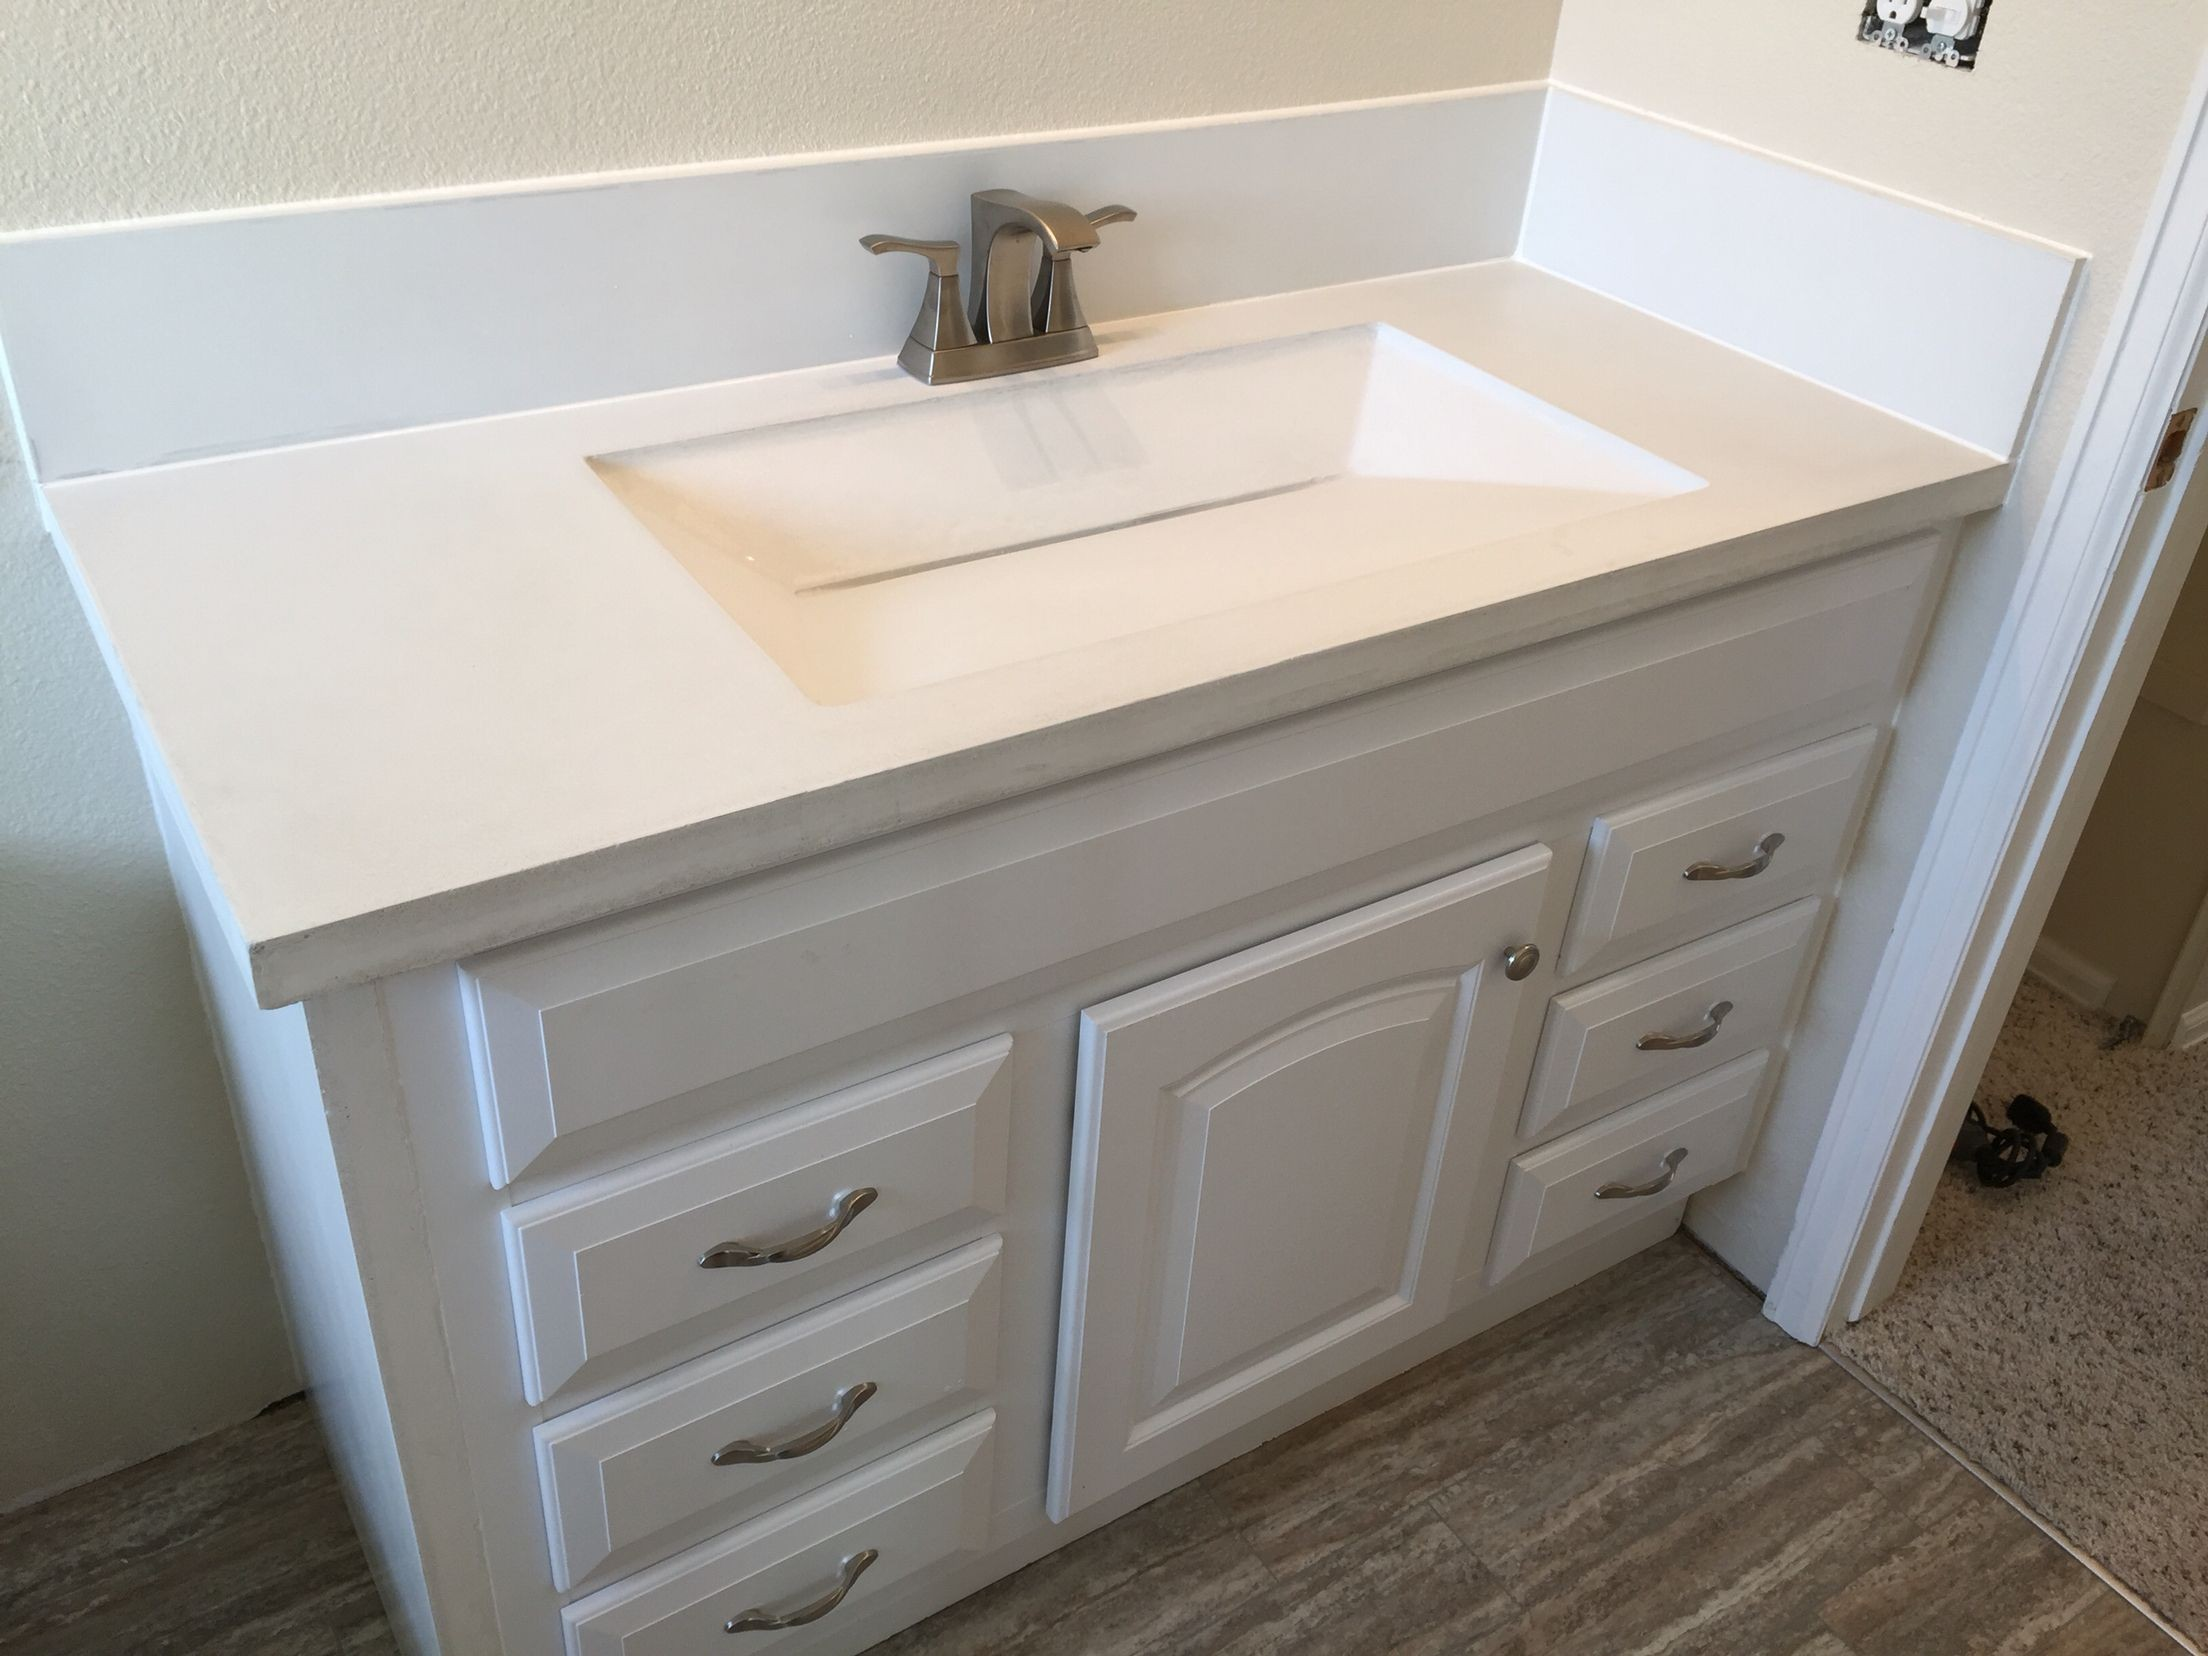 bathroom countertop with integrated sink  Custom built white concrete countertop with integrated ..